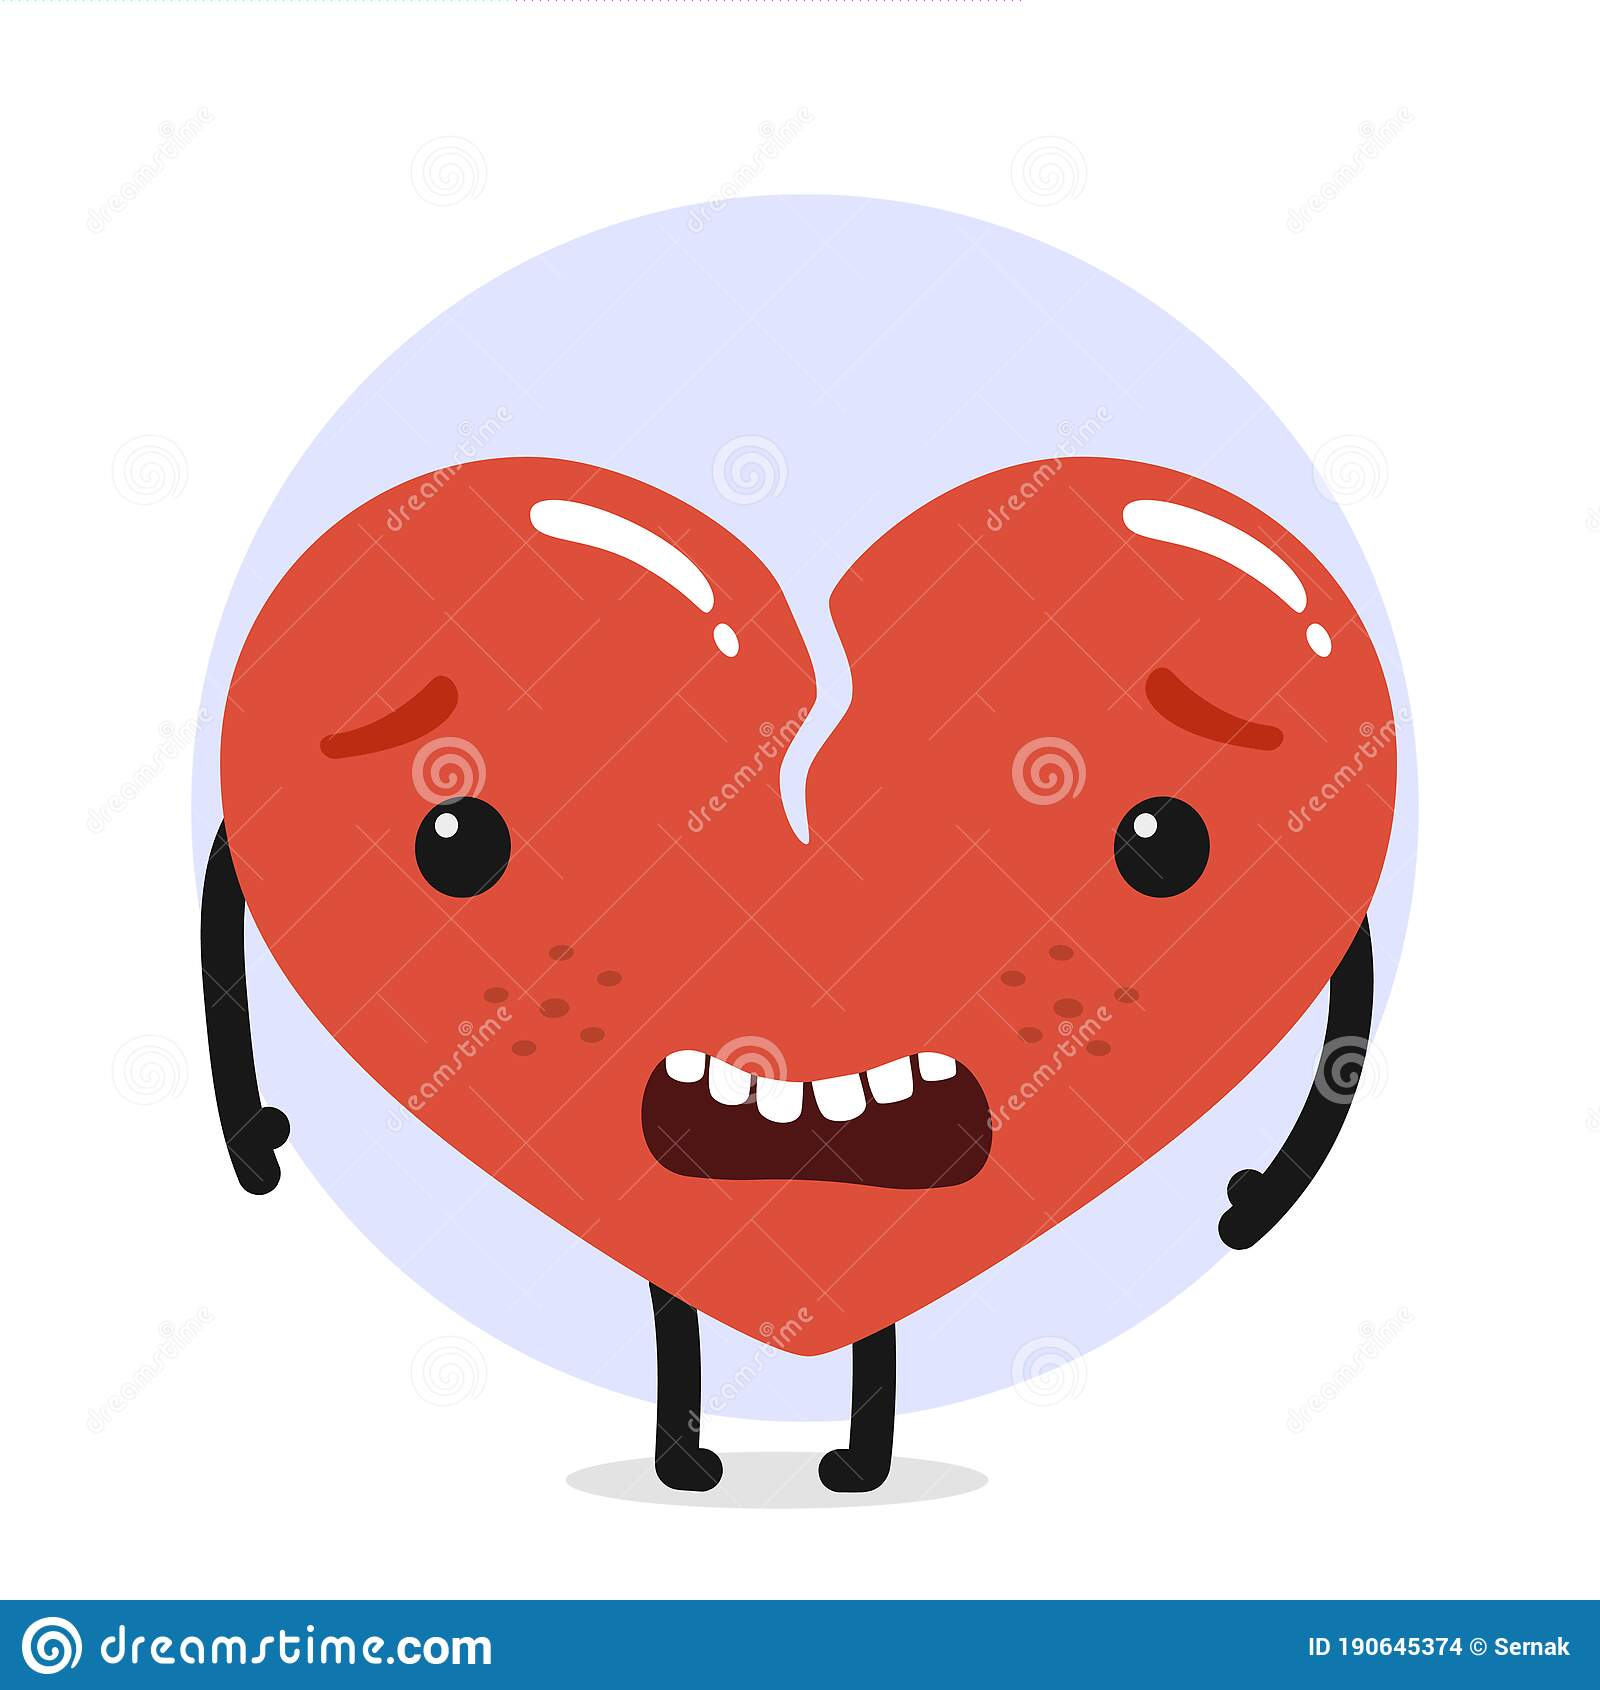 Cartoon Heart Character With Sad Desperate Face Stock Vector Illustration Of Damage Design 190645374 You can't separate desperate politicians from violence and trouble. ― bamigboye olurotimi. https www dreamstime com web image190645374